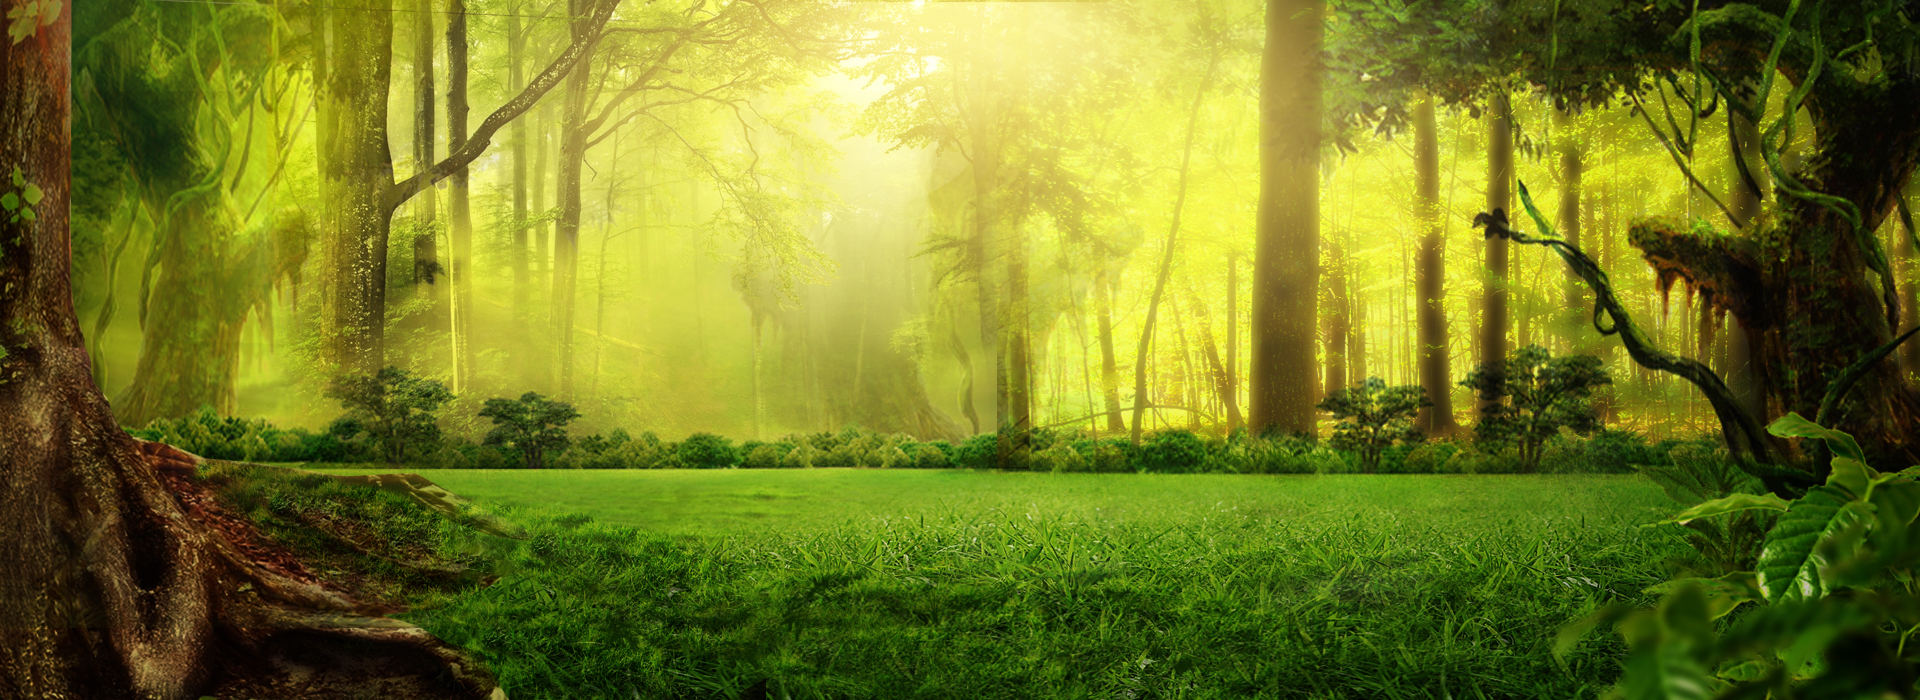 fantasy forest green background  nature  green  forest background image for free download